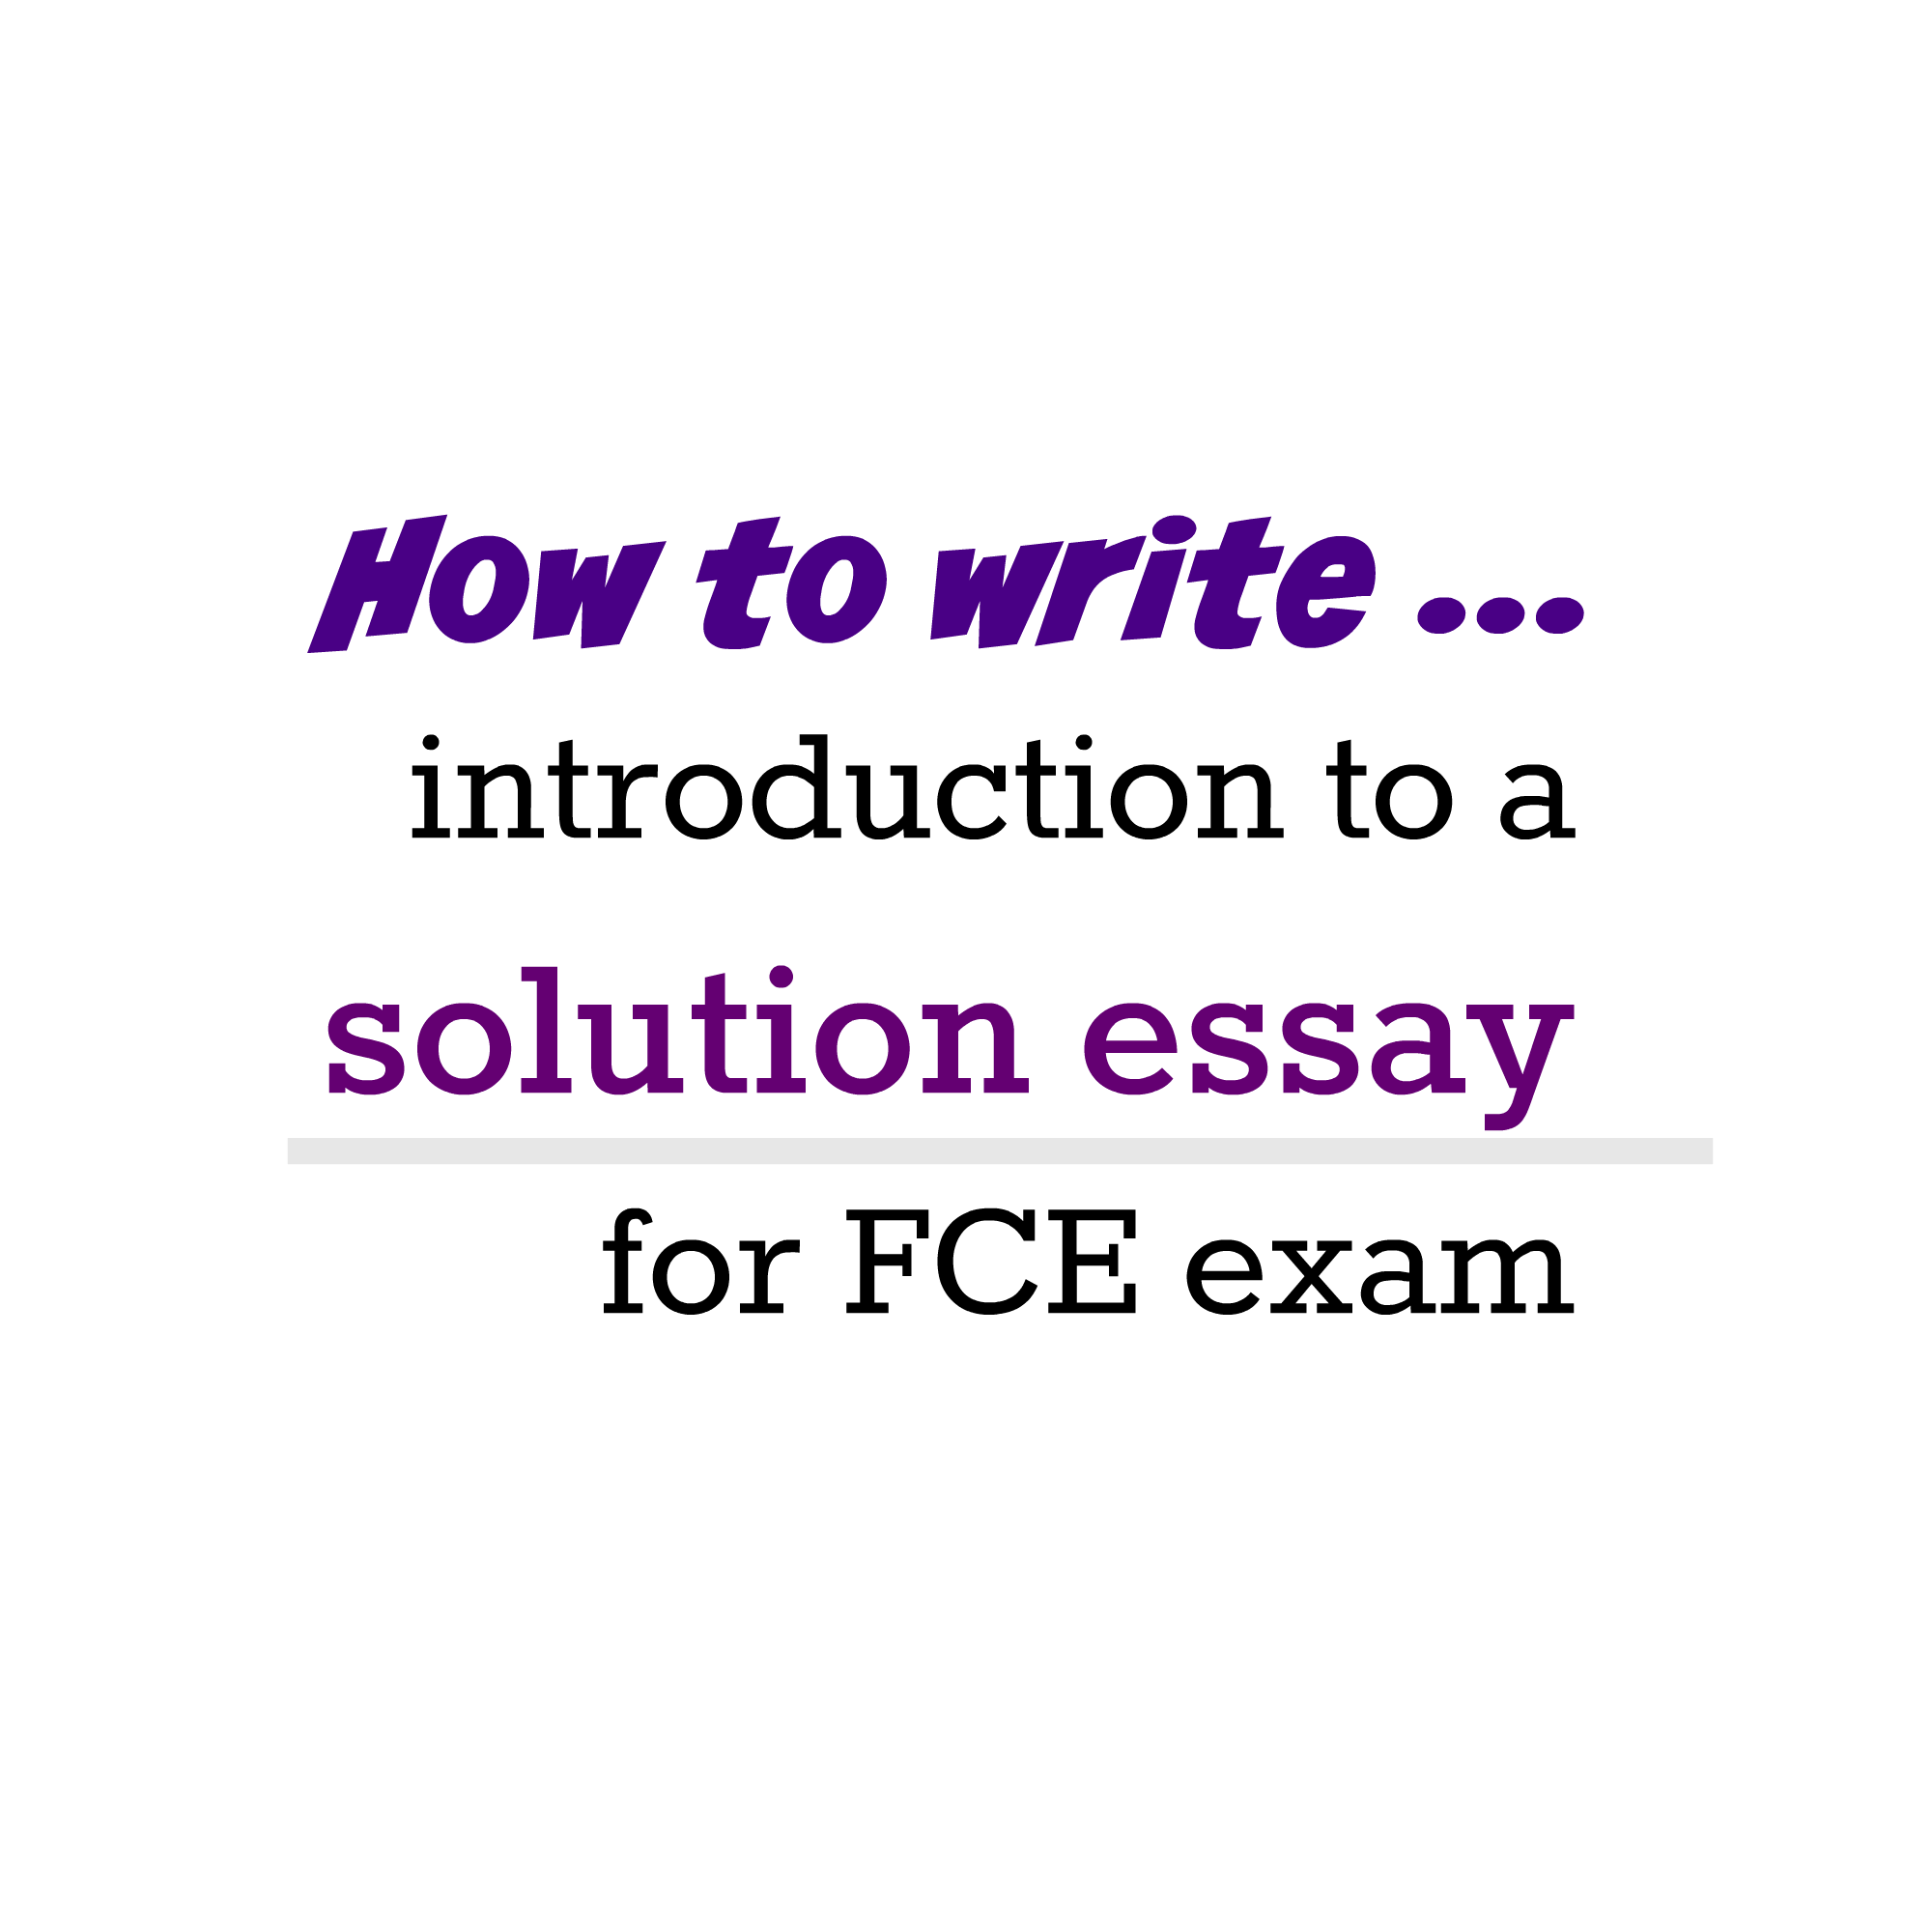 fce writing part essay b english exam help how to write the introduction to a solution essay for fce exam